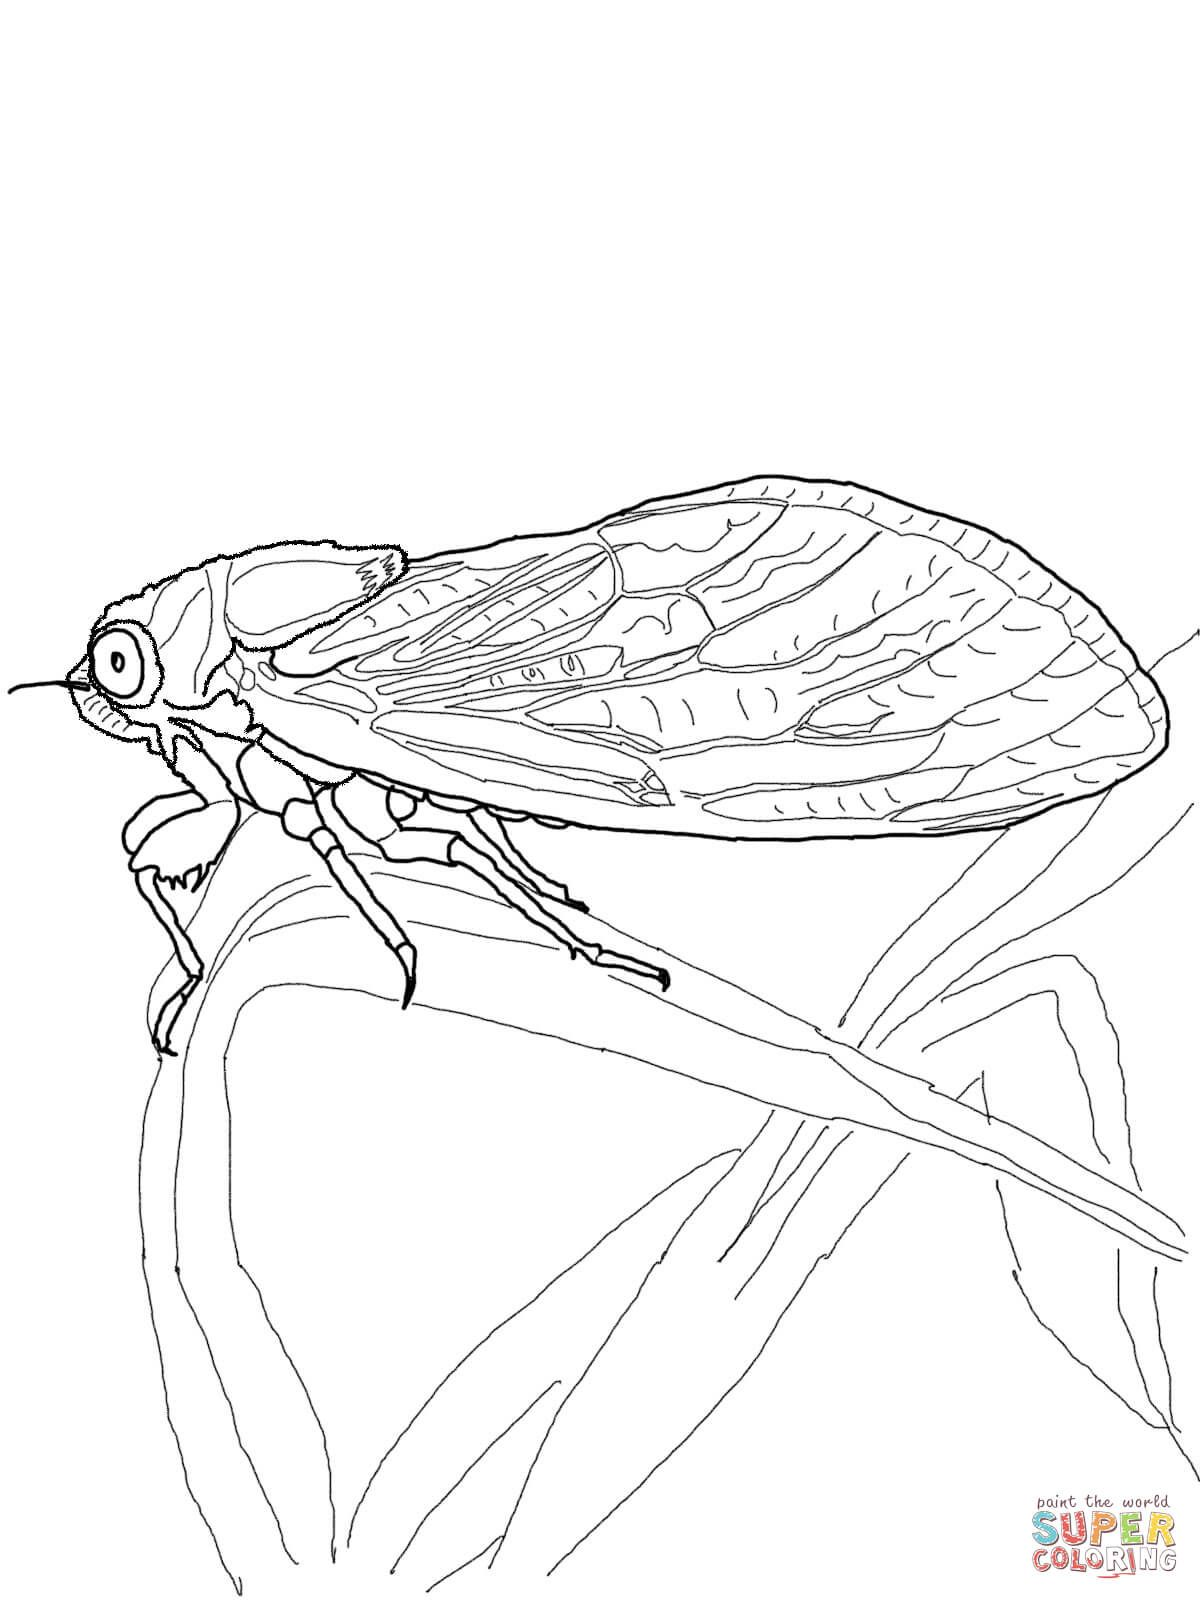 Cicada Super Coloring In 2020 Coloring Pages Free Printable Coloring Pages Printable Coloring Pages